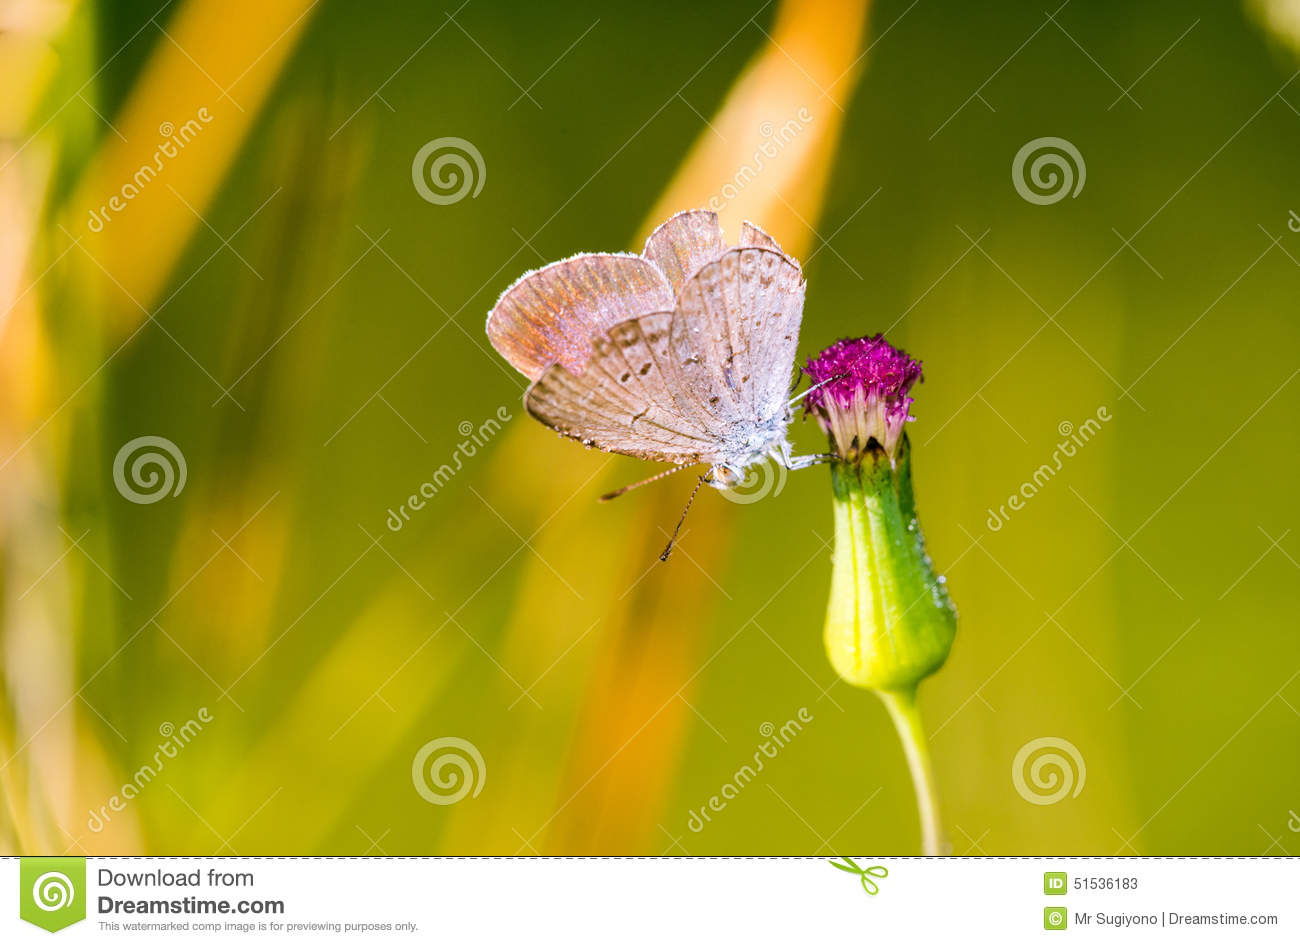 Butterfly on flower stock image. Image of butterfly, green - 51536183